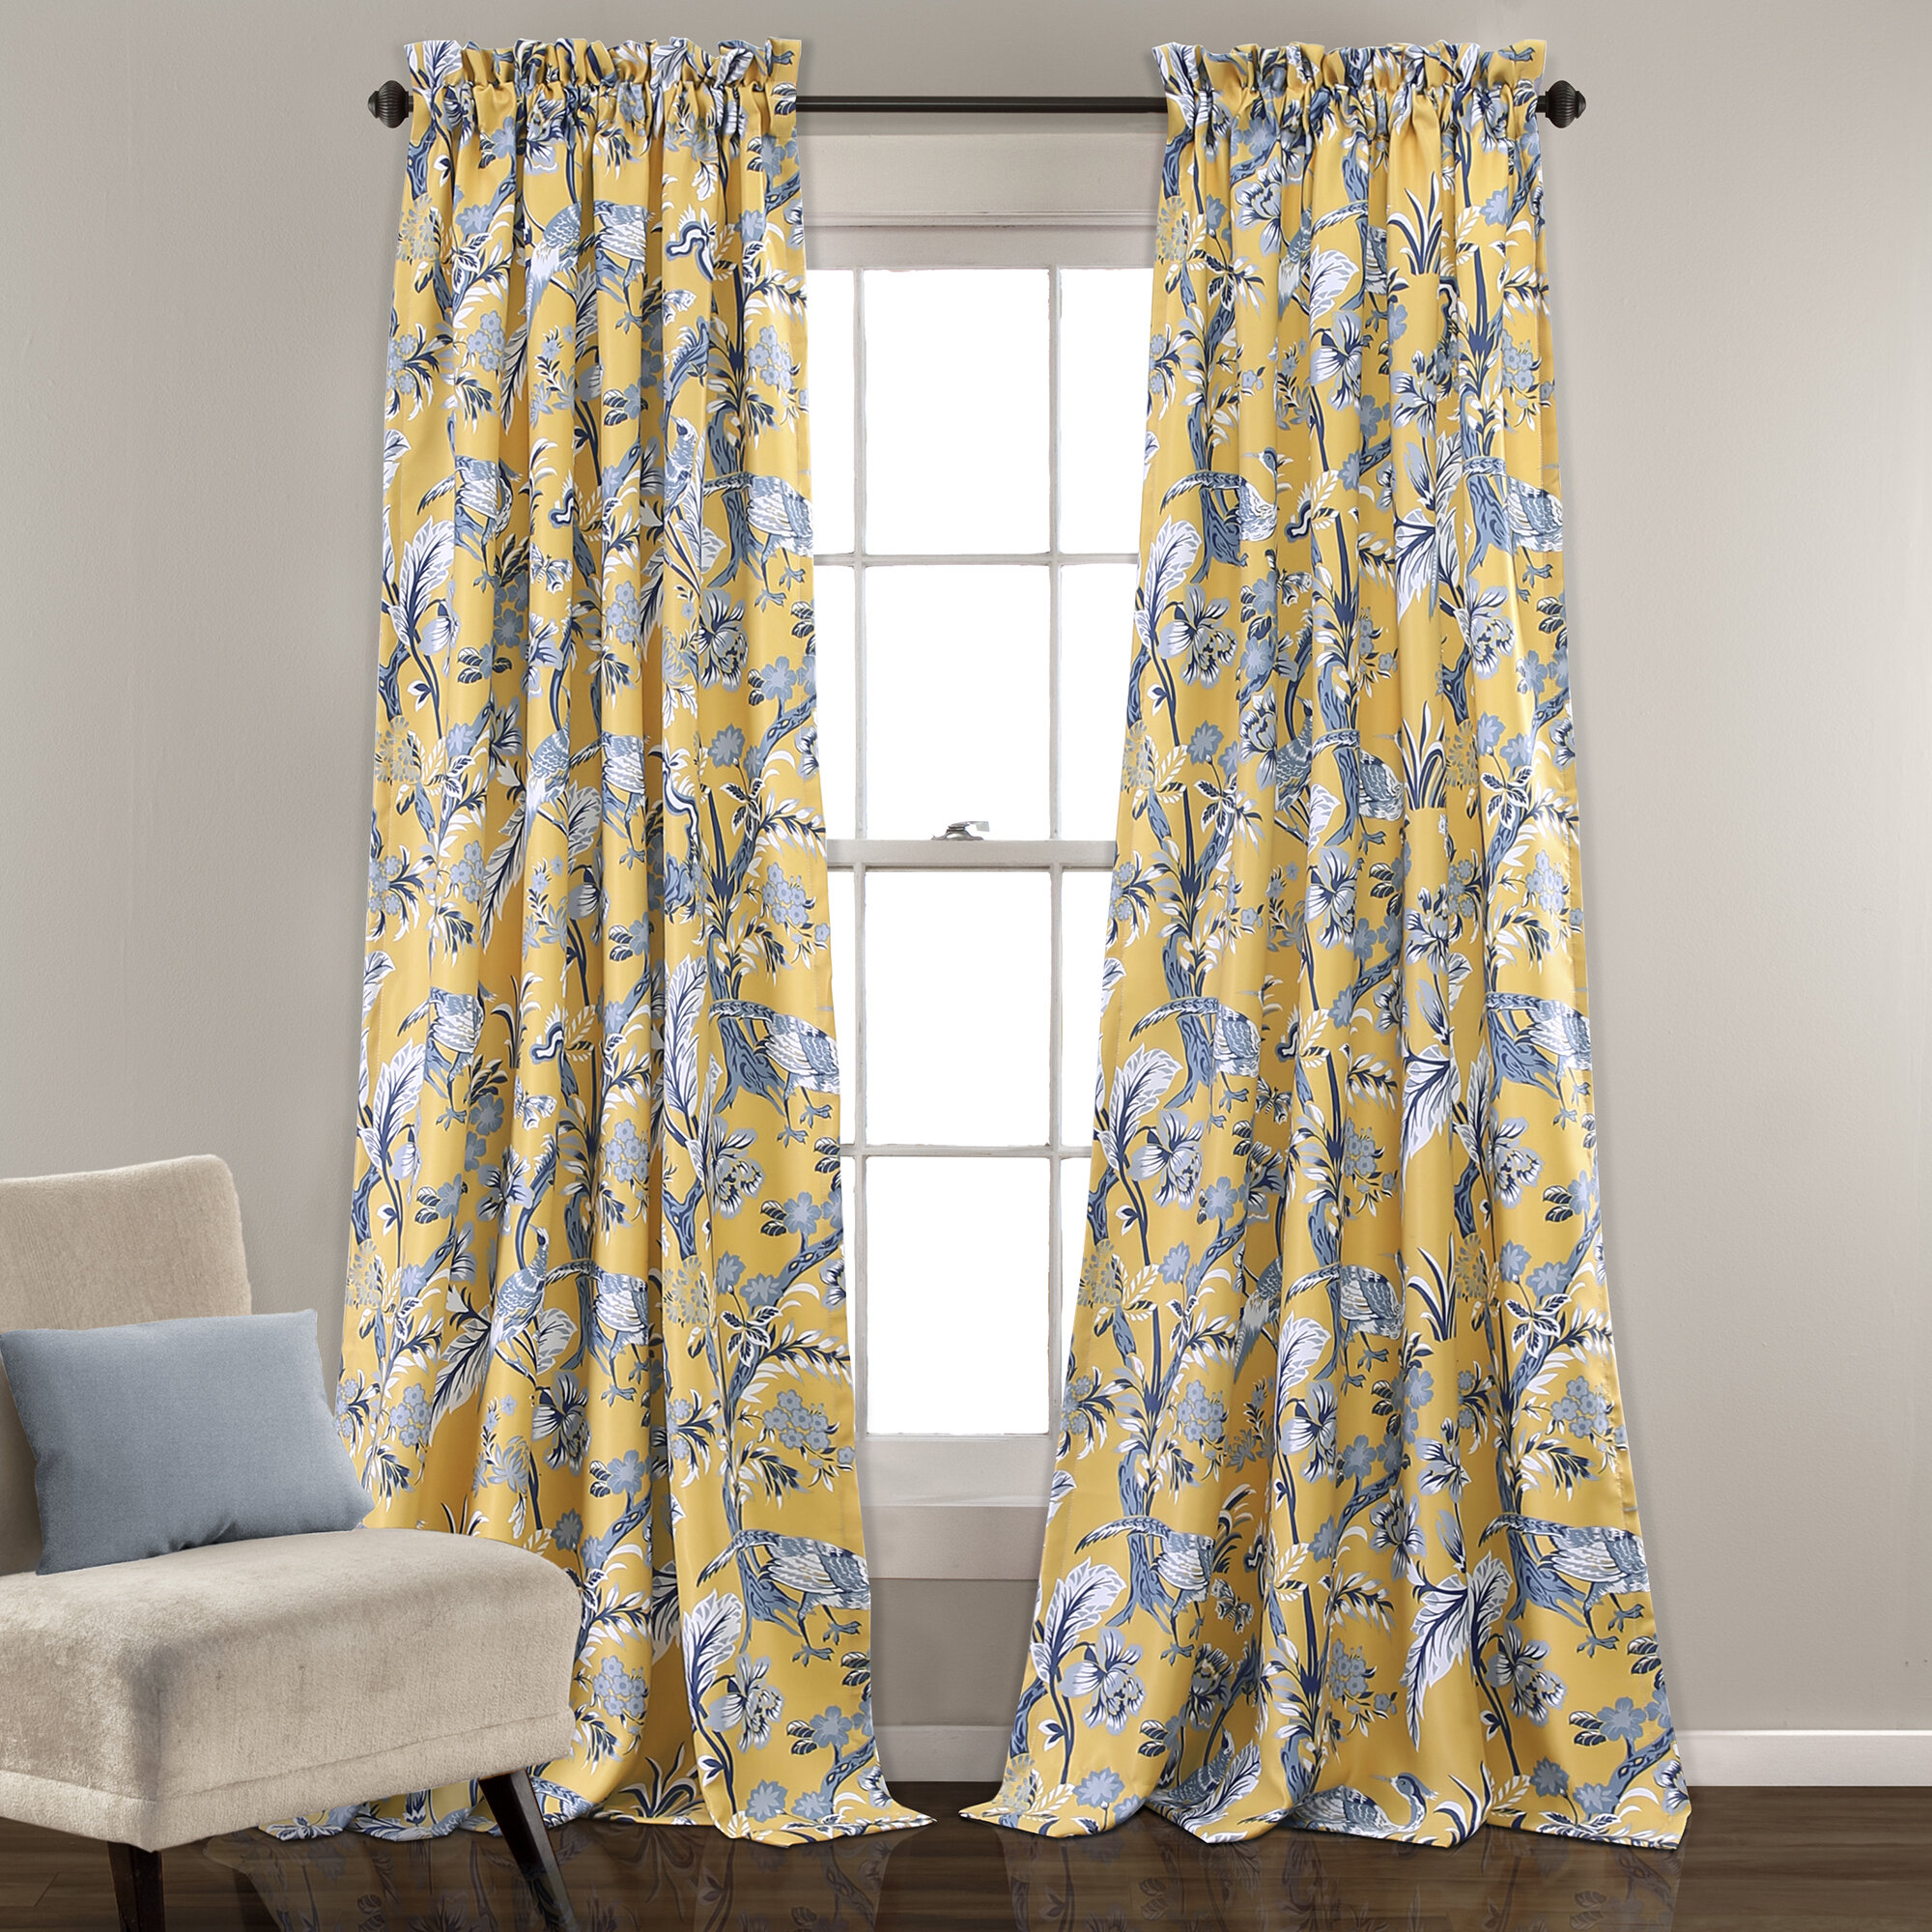 Panagia nature floral room darkening thermal rod pocket curtain panels reviews joss main